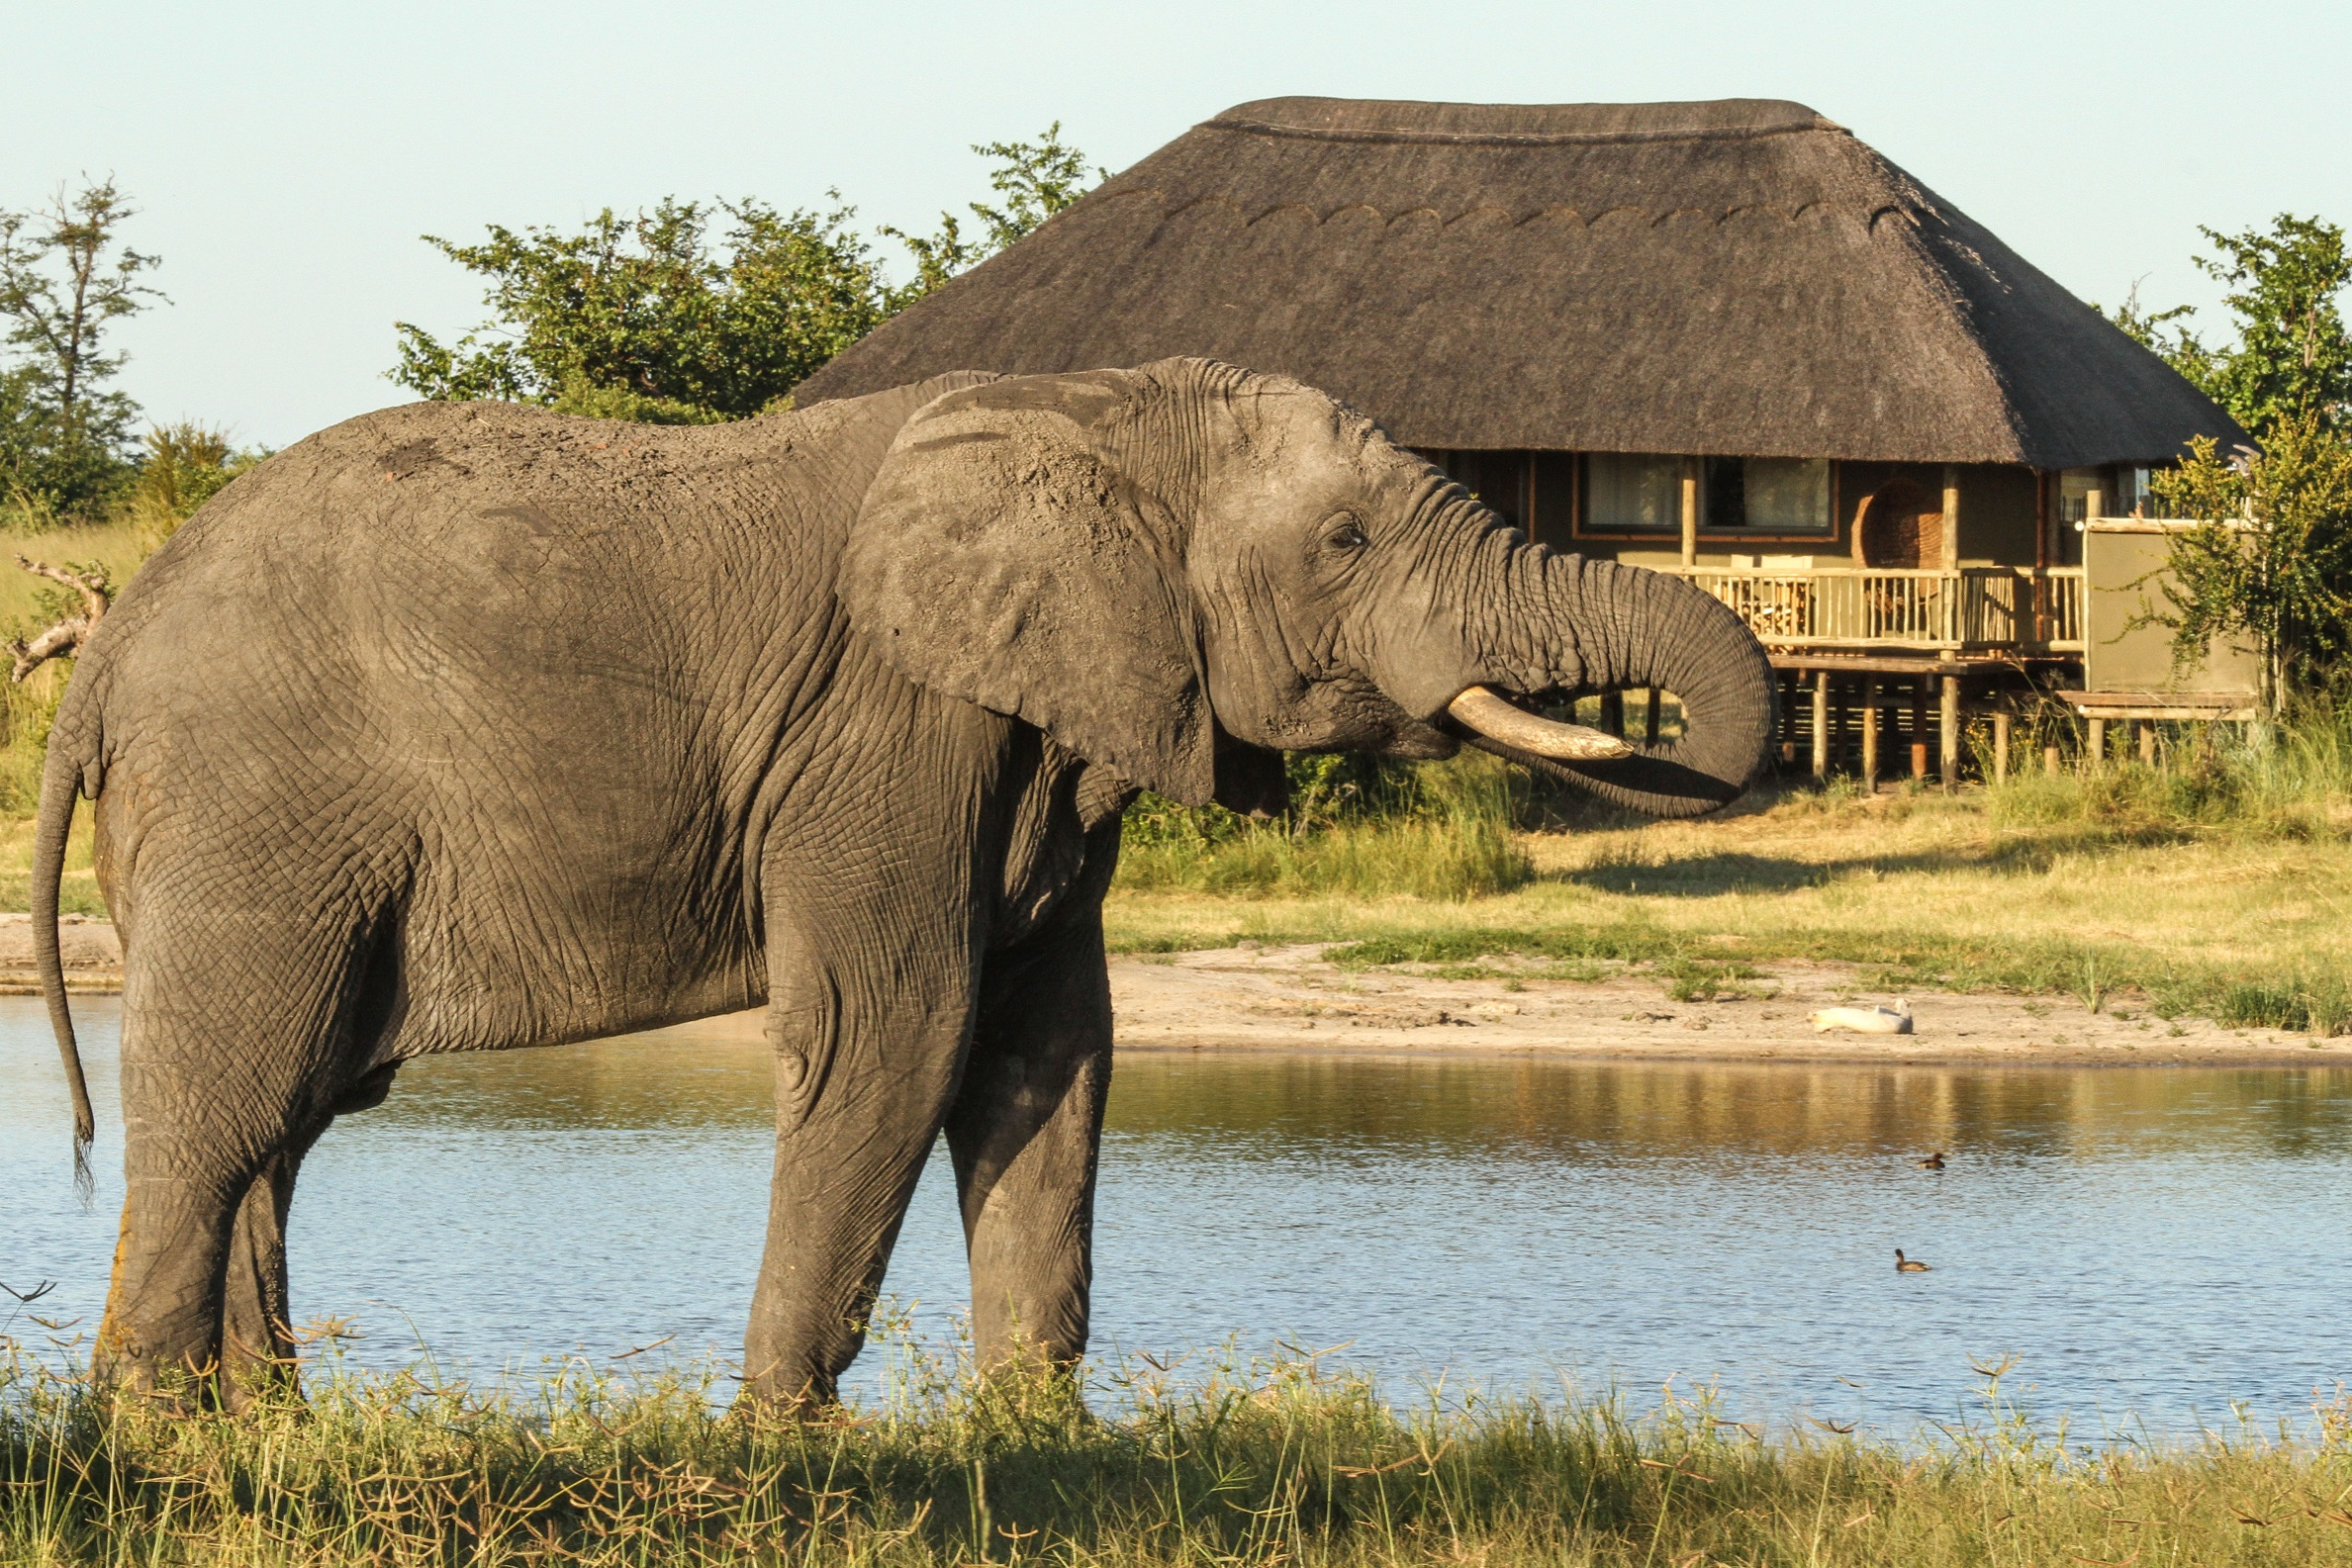 nehimba---elephant-outside-the-thatched-tent.jpg